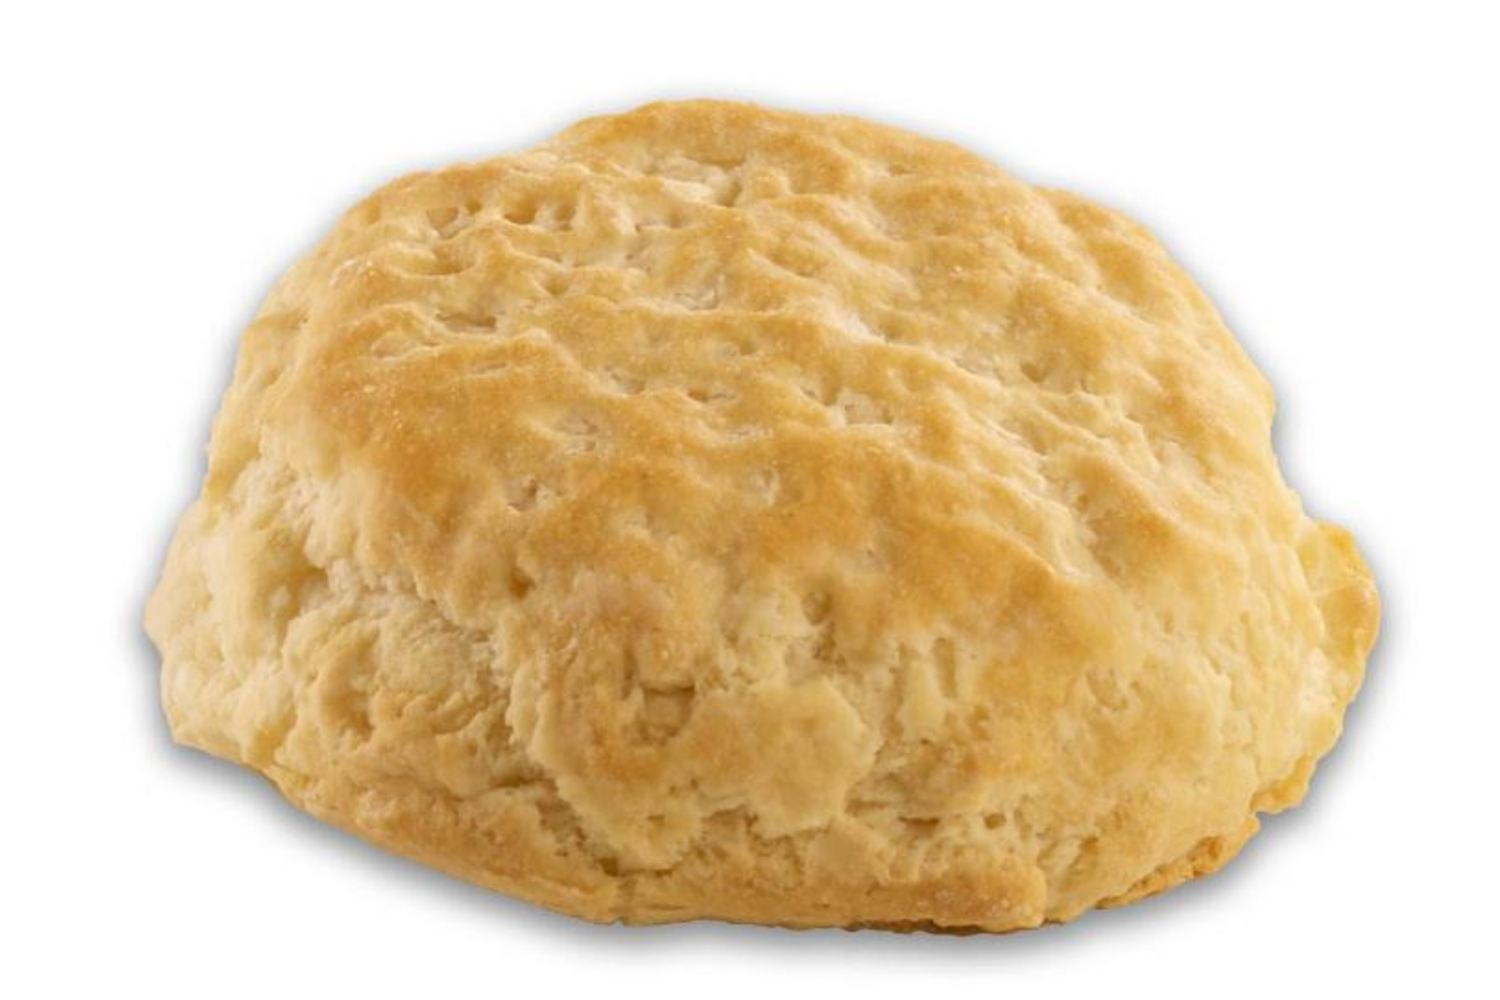 BAKERY CHEF Whole Buttermilk Biscuits